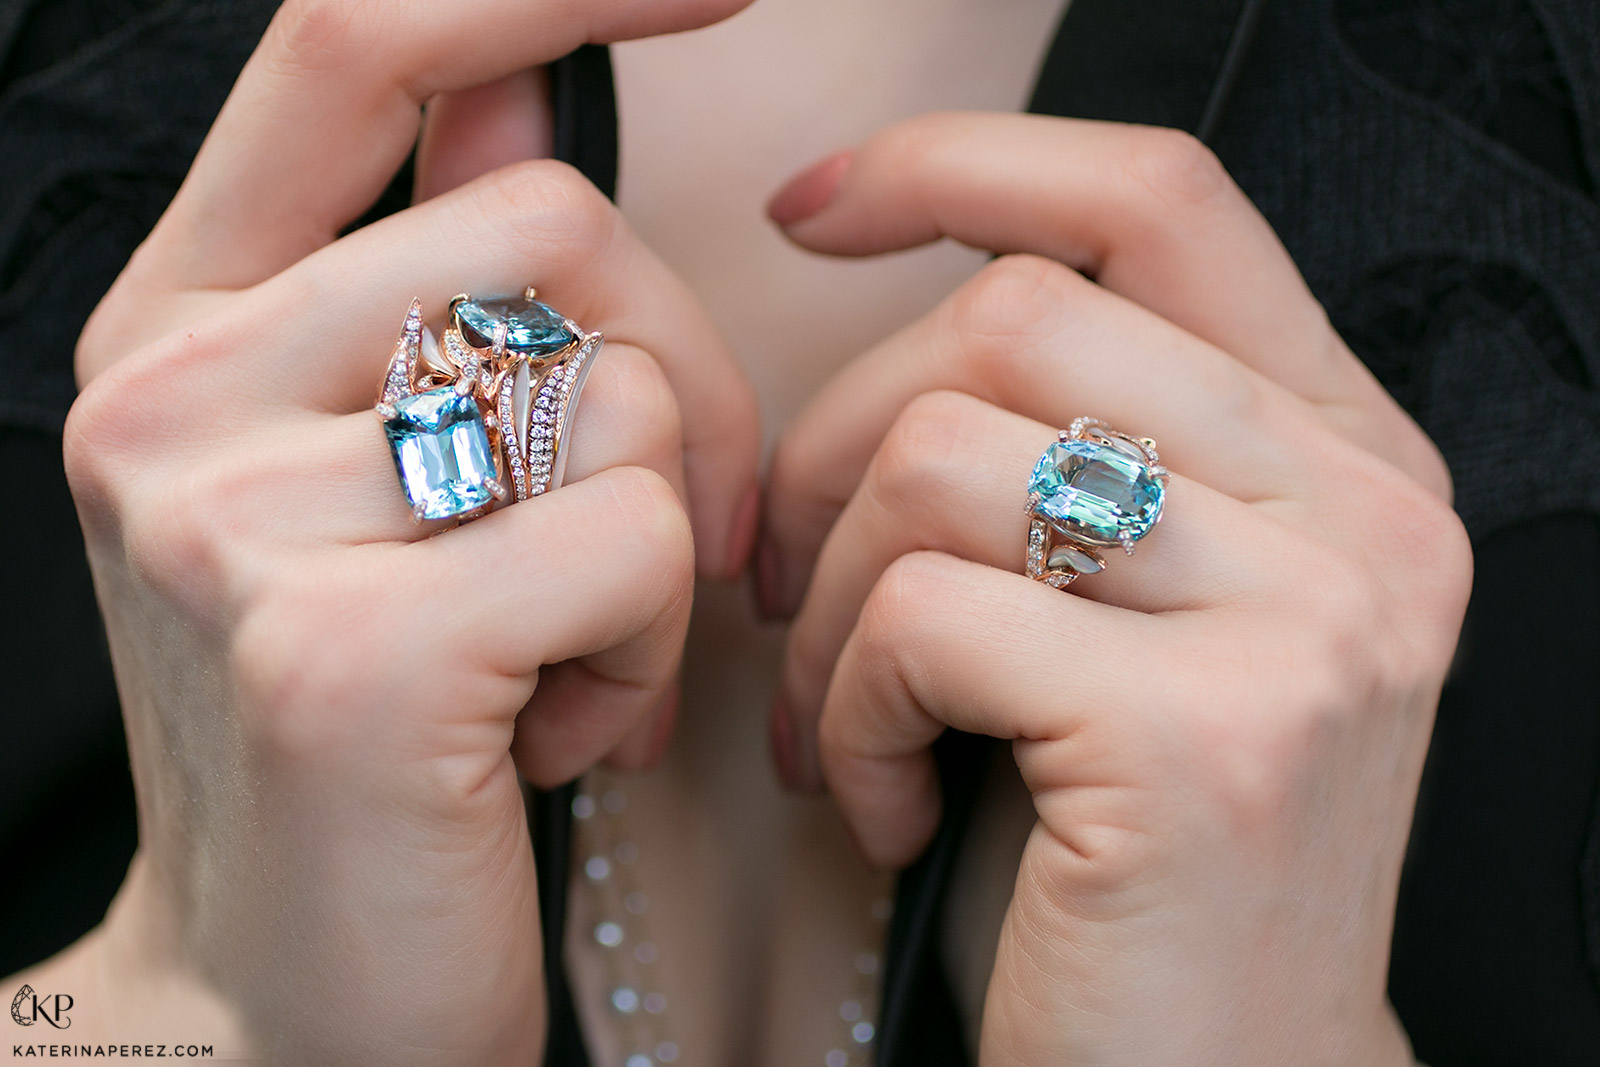 Simone Jewels rings with Santa Maria aquamarines, diamonds and mother of pearl in 18k rose gold